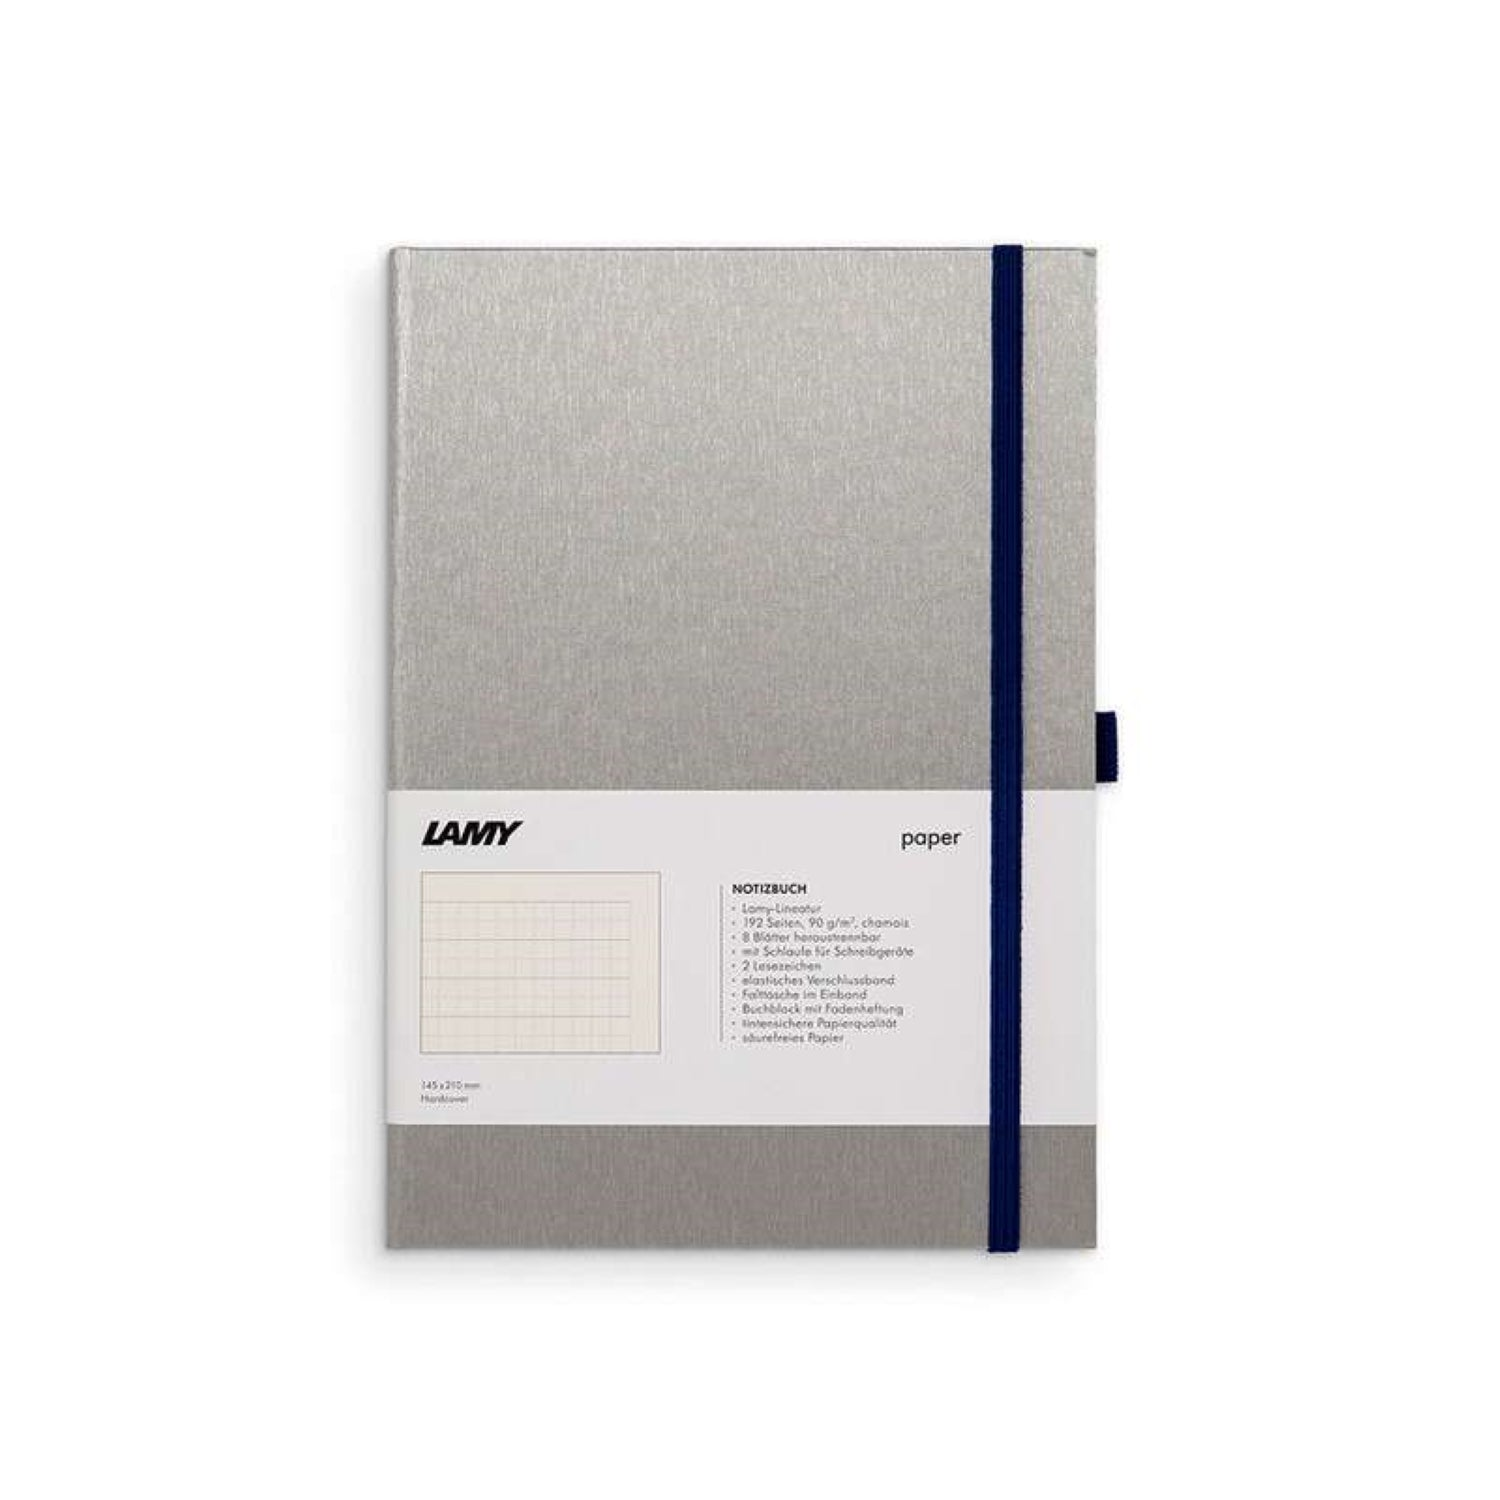 LAMY HARD COVER NOTEBOOK RULED A5 OCEAN BLUE